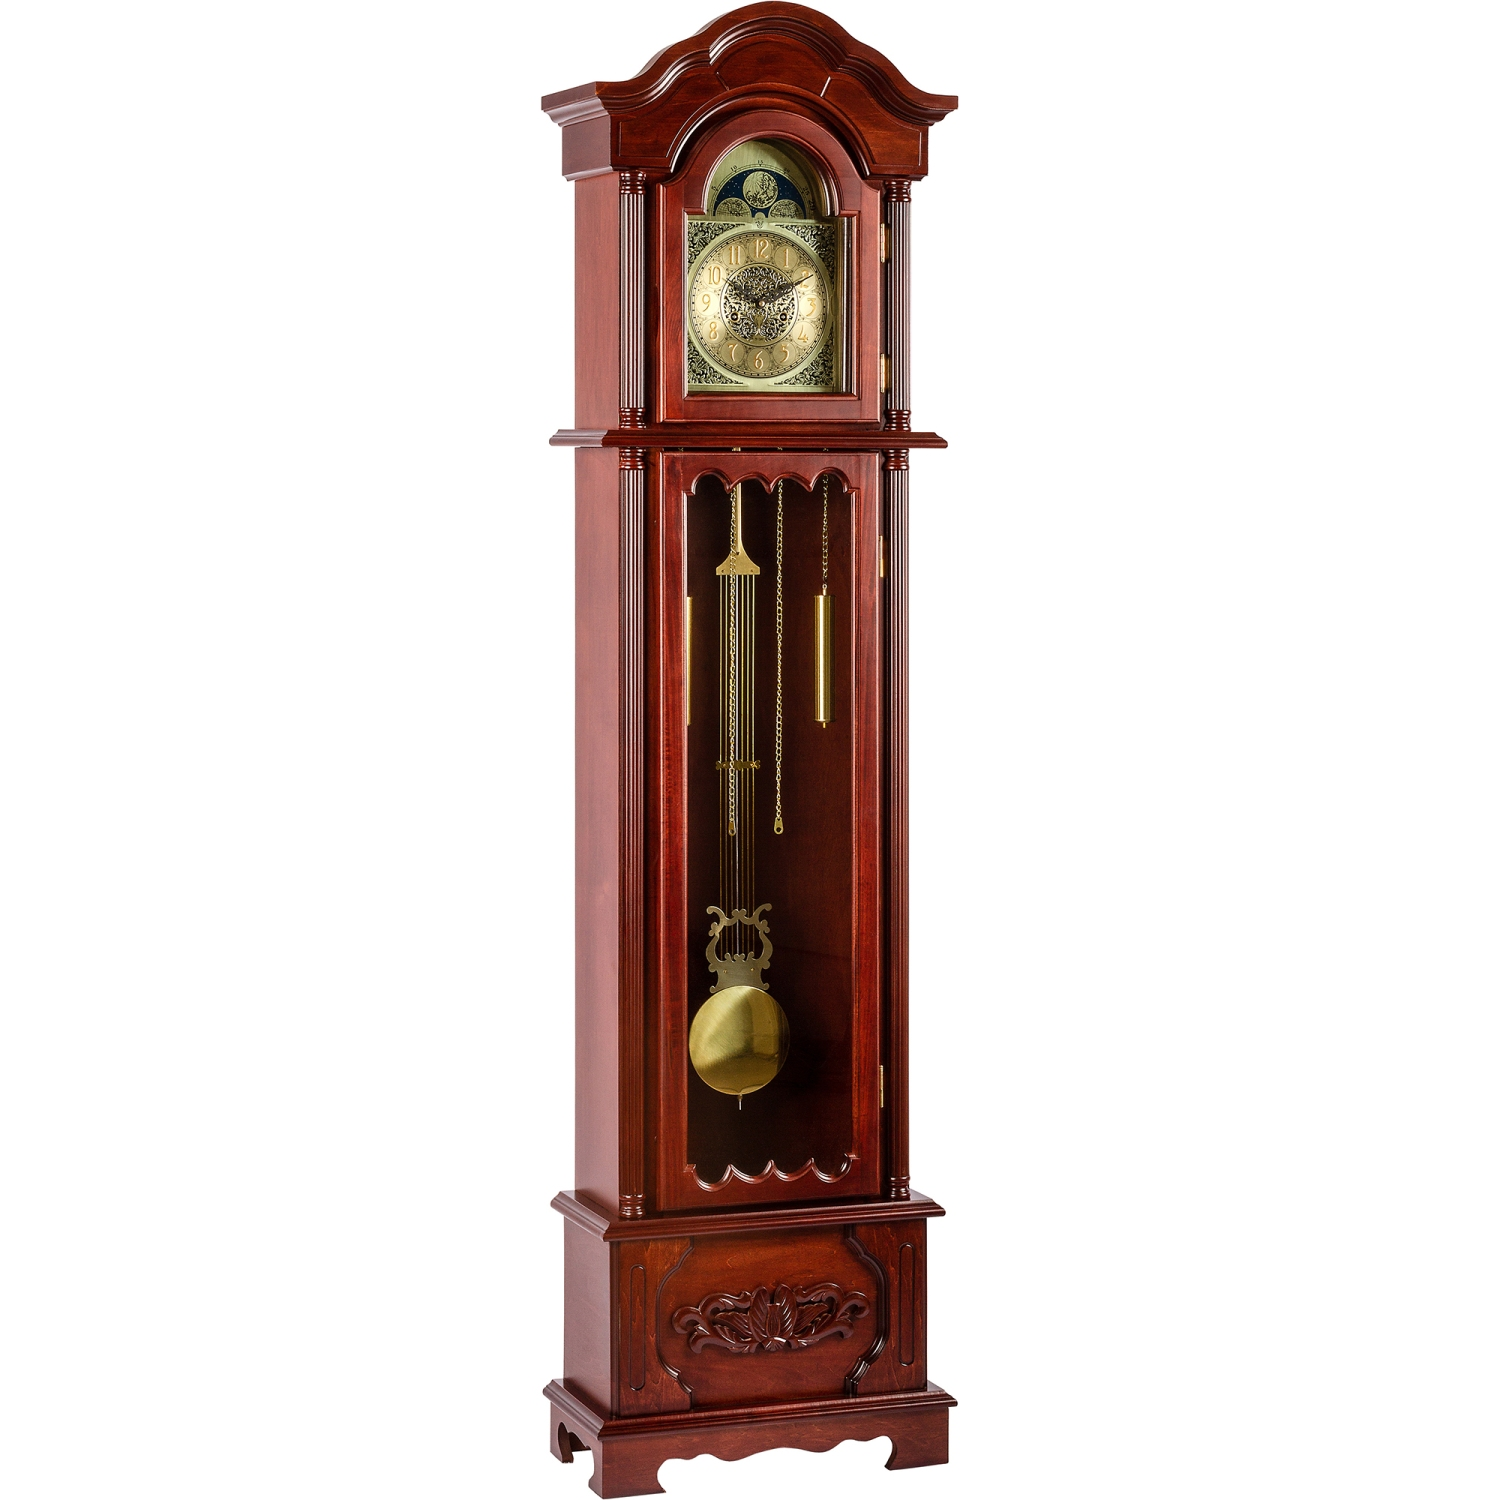 standuhr pendeluhr uhr pendel regulator kronos 200 cm ebay. Black Bedroom Furniture Sets. Home Design Ideas